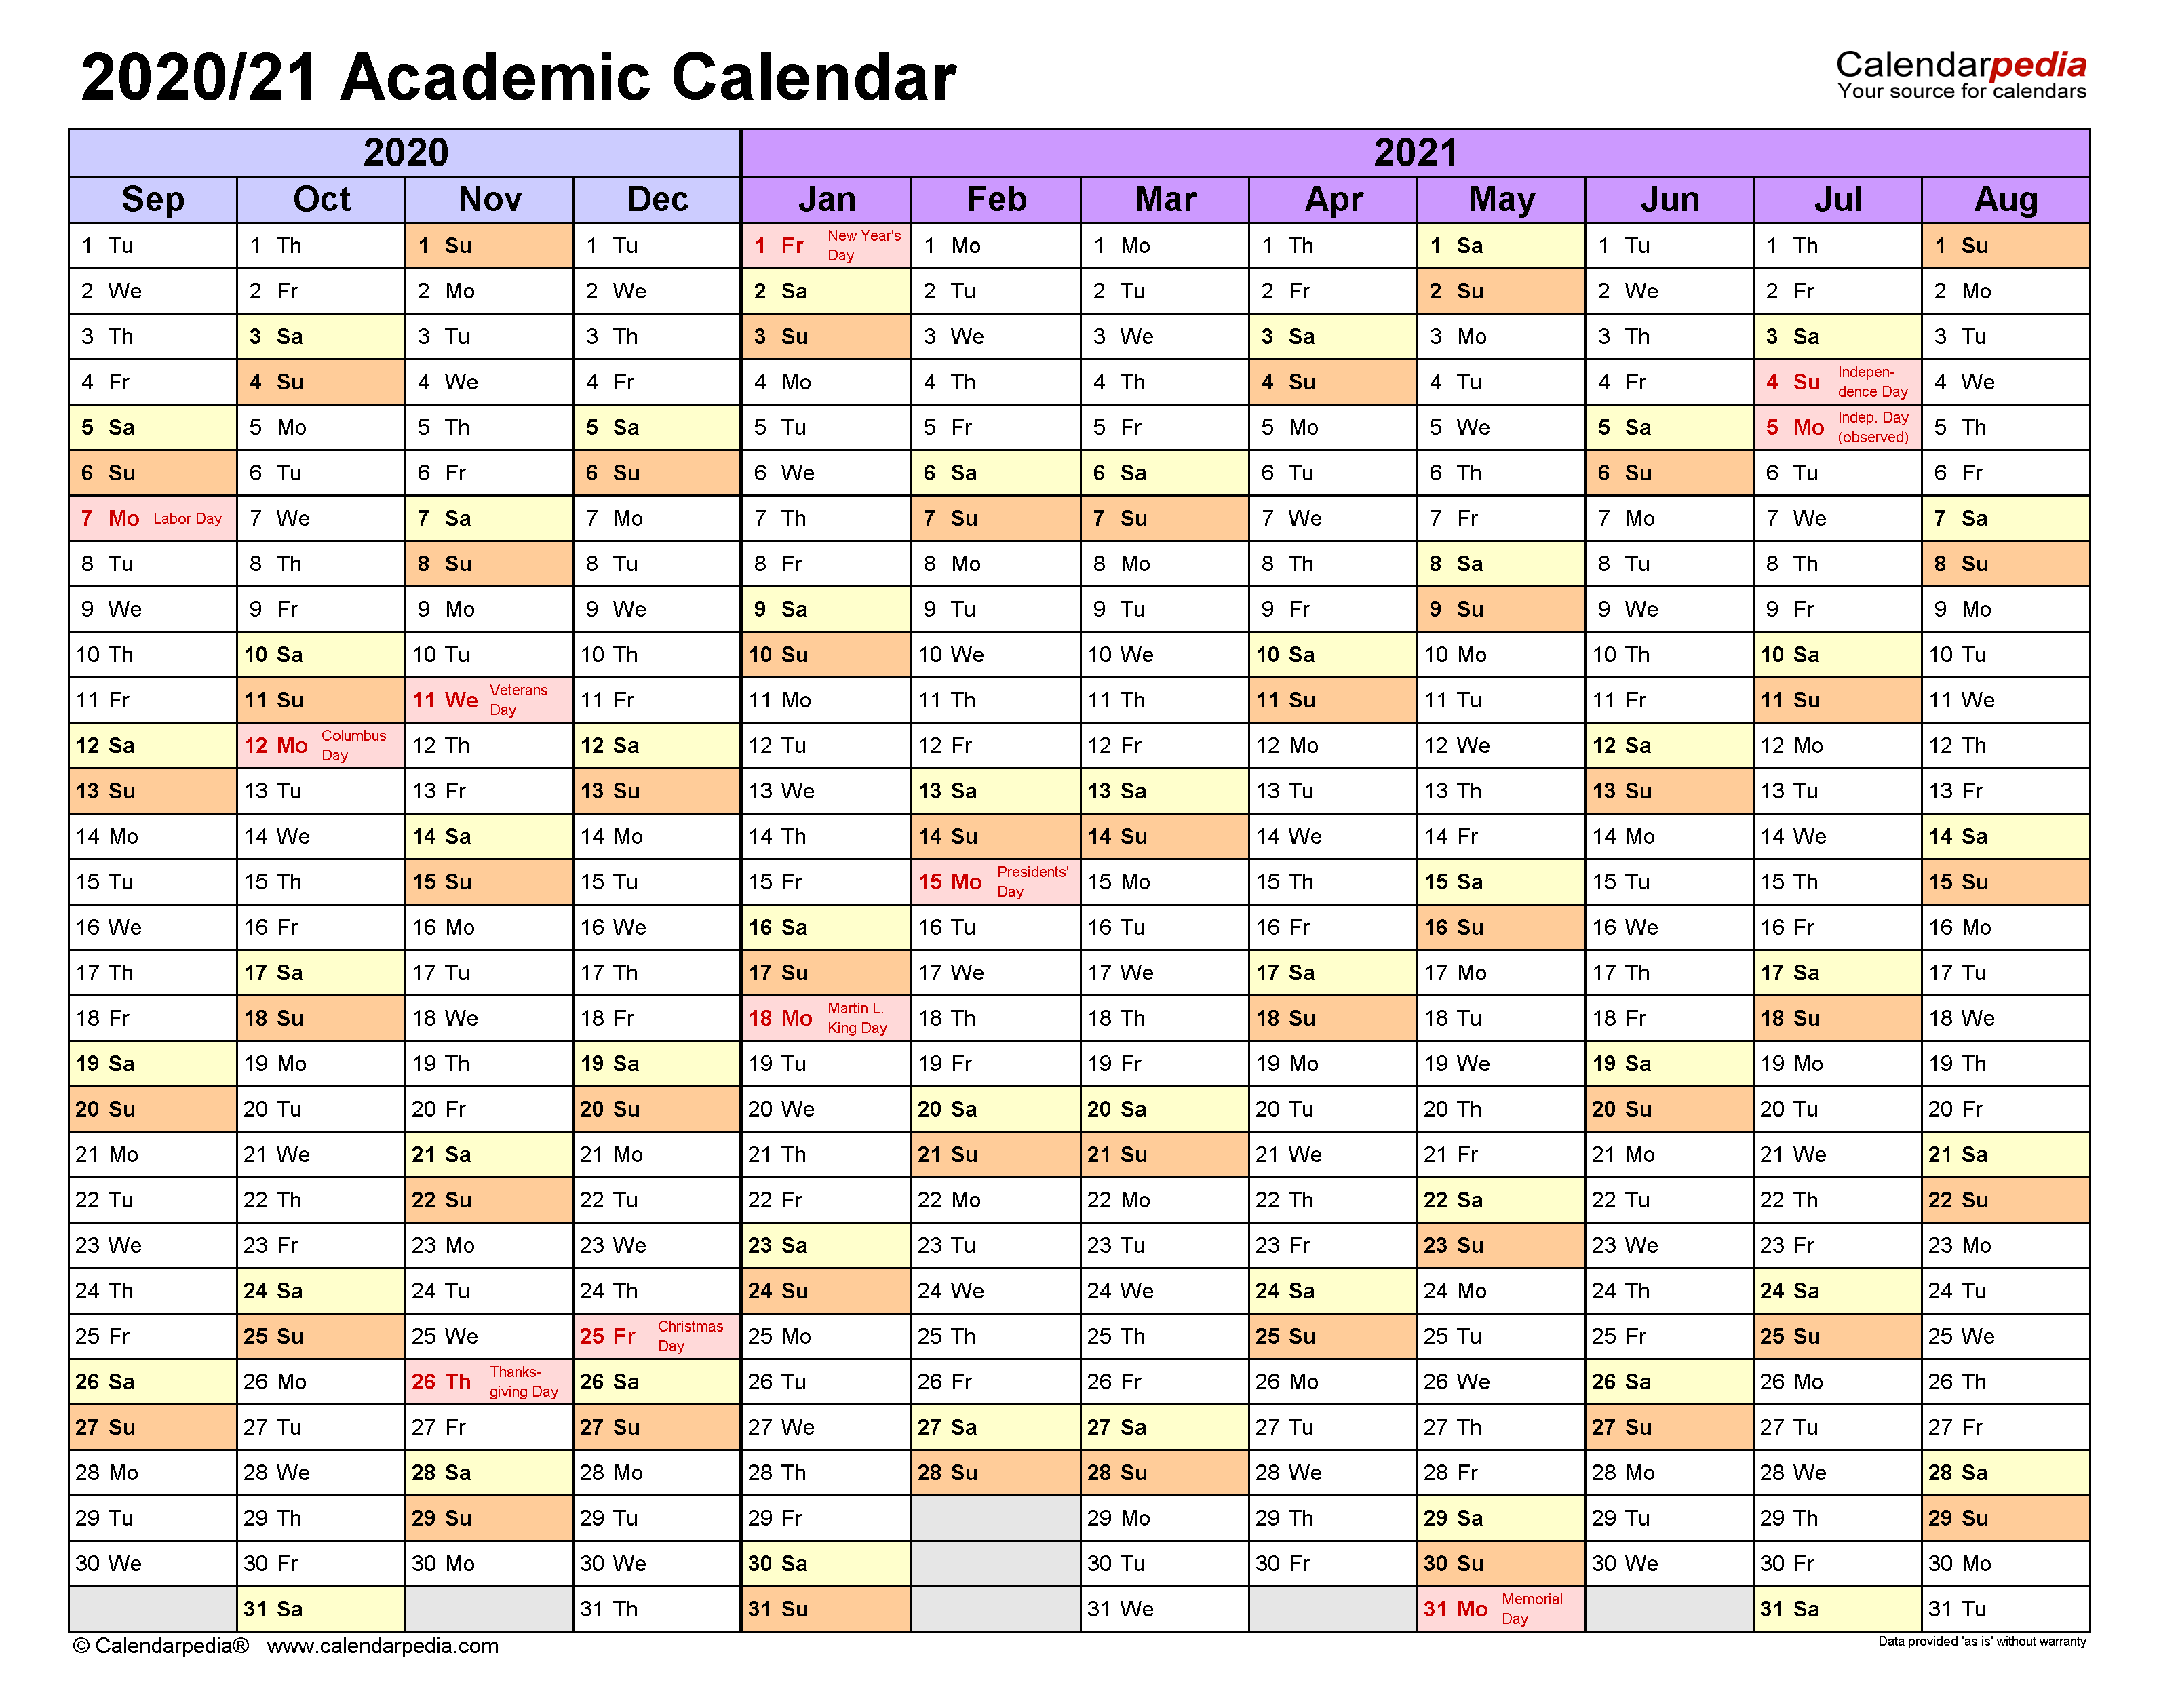 Academic Calendars 2020/2021 - Free Printable Excel Templates